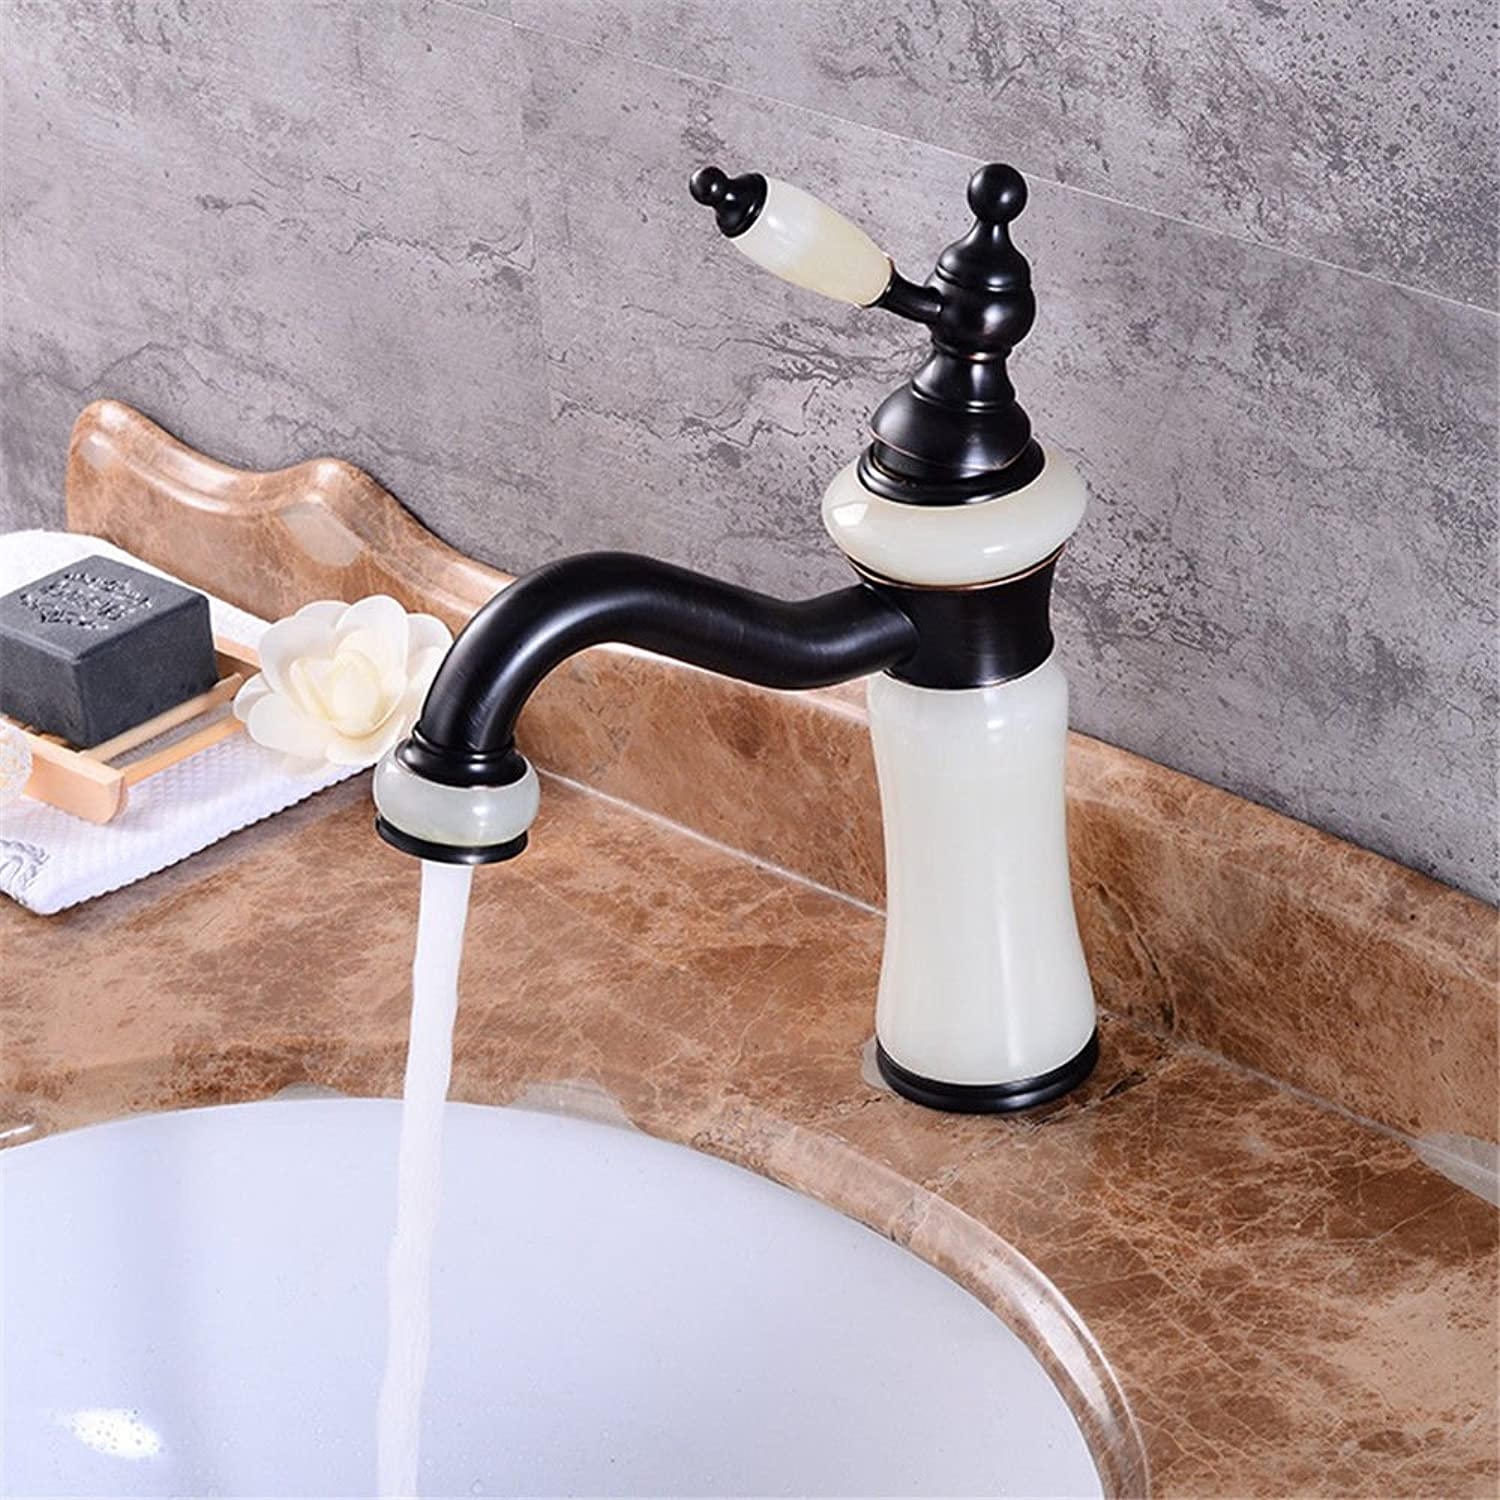 Hlluya Professional Sink Mixer Tap Kitchen Faucet The copper basin faucet hot and cold single hole golden taps Faucet